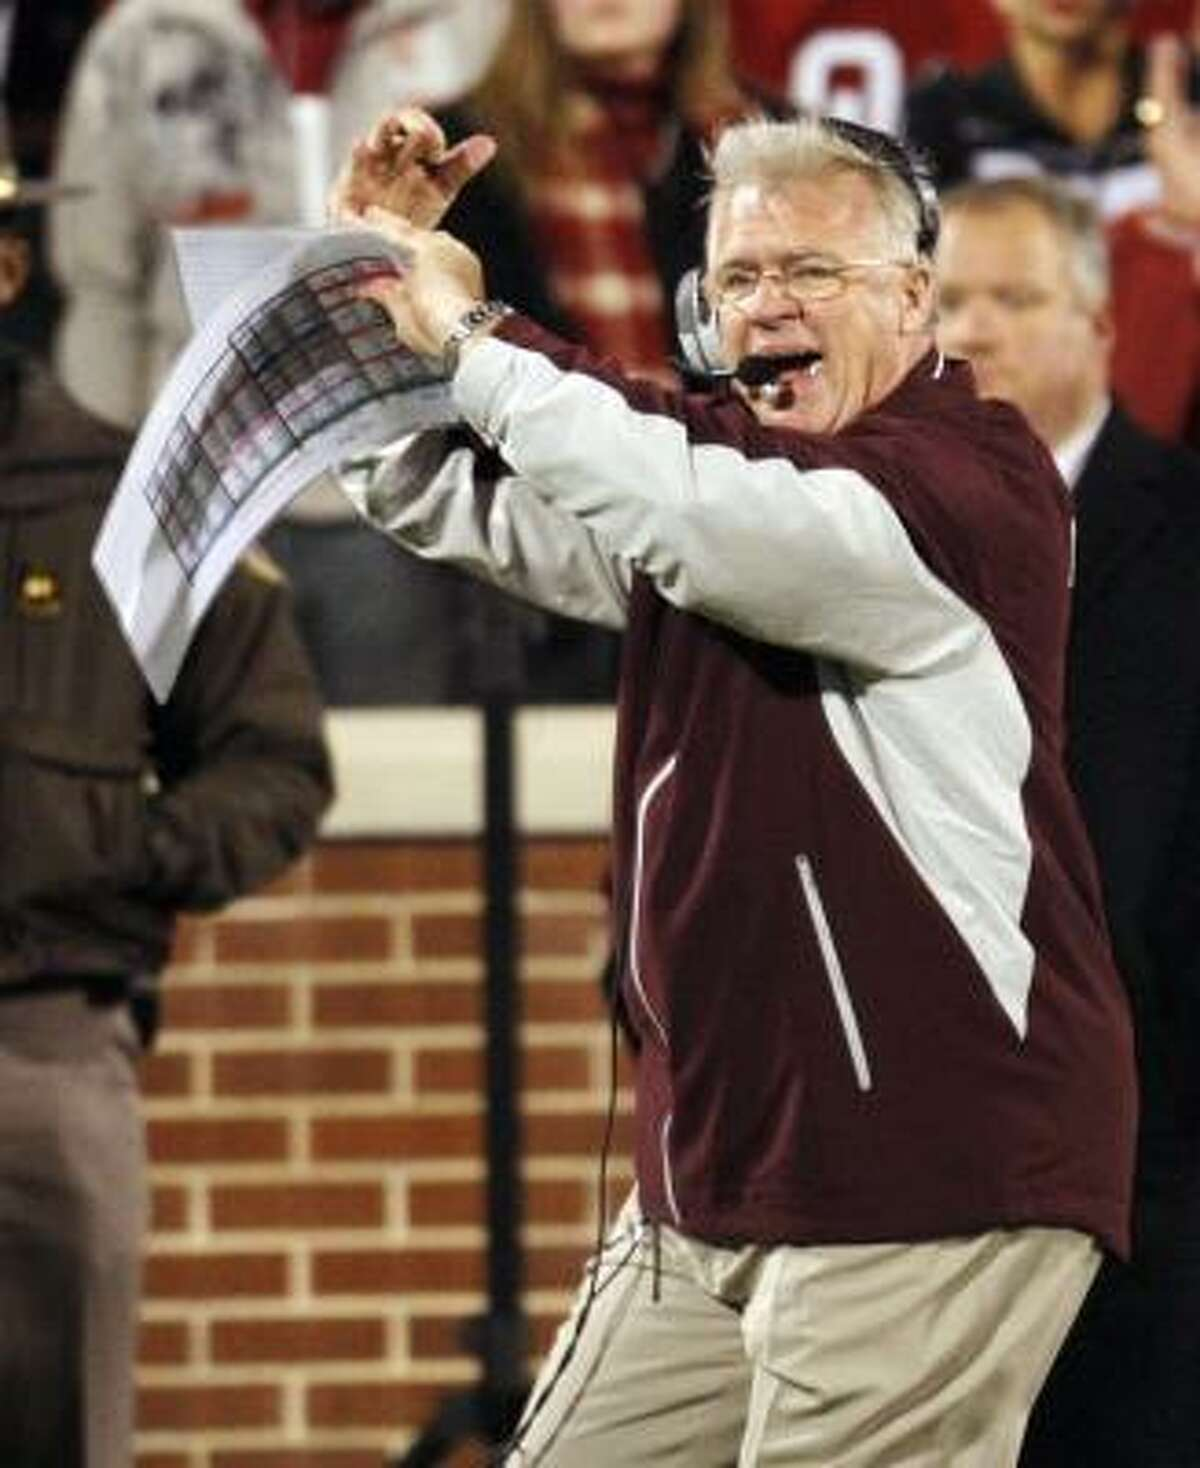 Mike Sherman and the Aggies could be in line for a Texas Bowl bid against Navy if they beat Baylor.